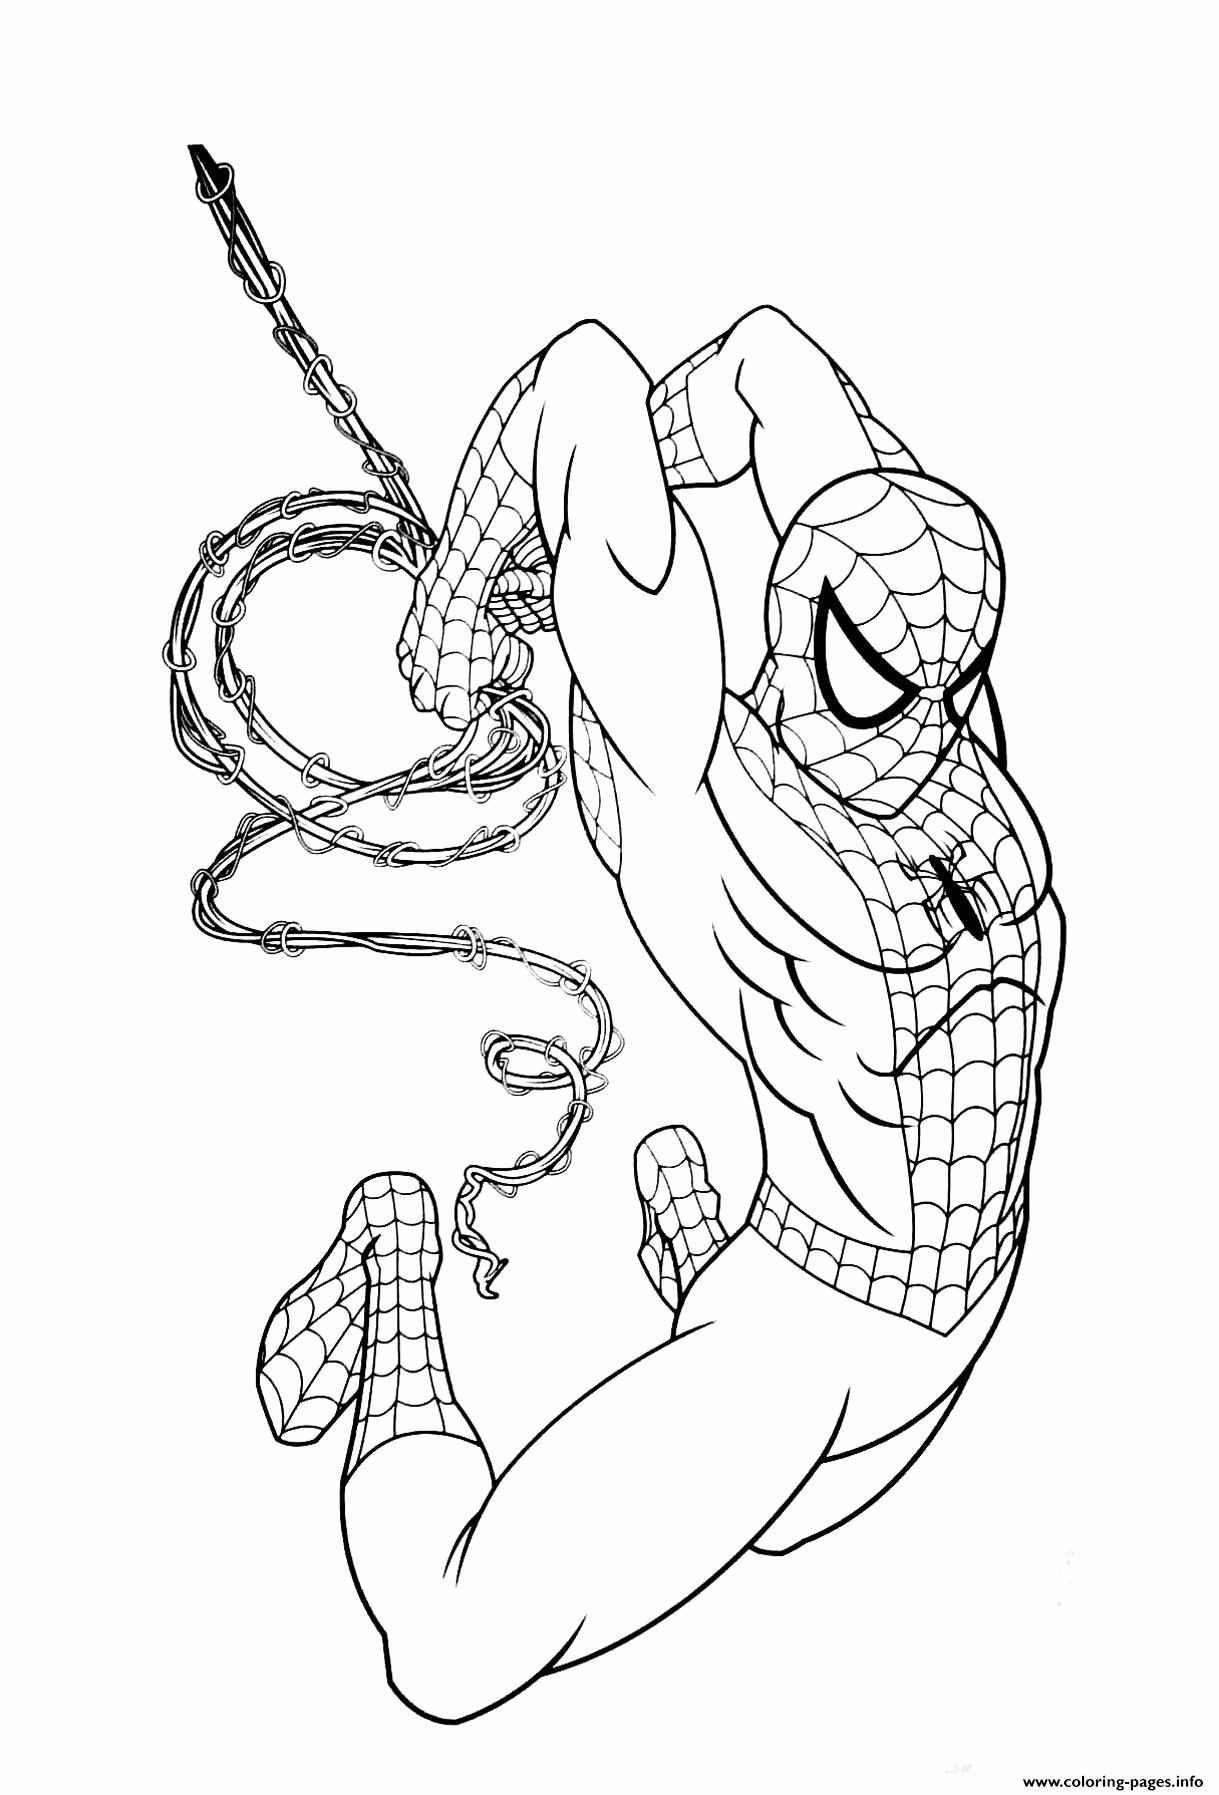 Avengers Endgame Coloring Pages For Kids In 2020 Superhero Coloring Avengers Coloring Superhero Coloring Pages